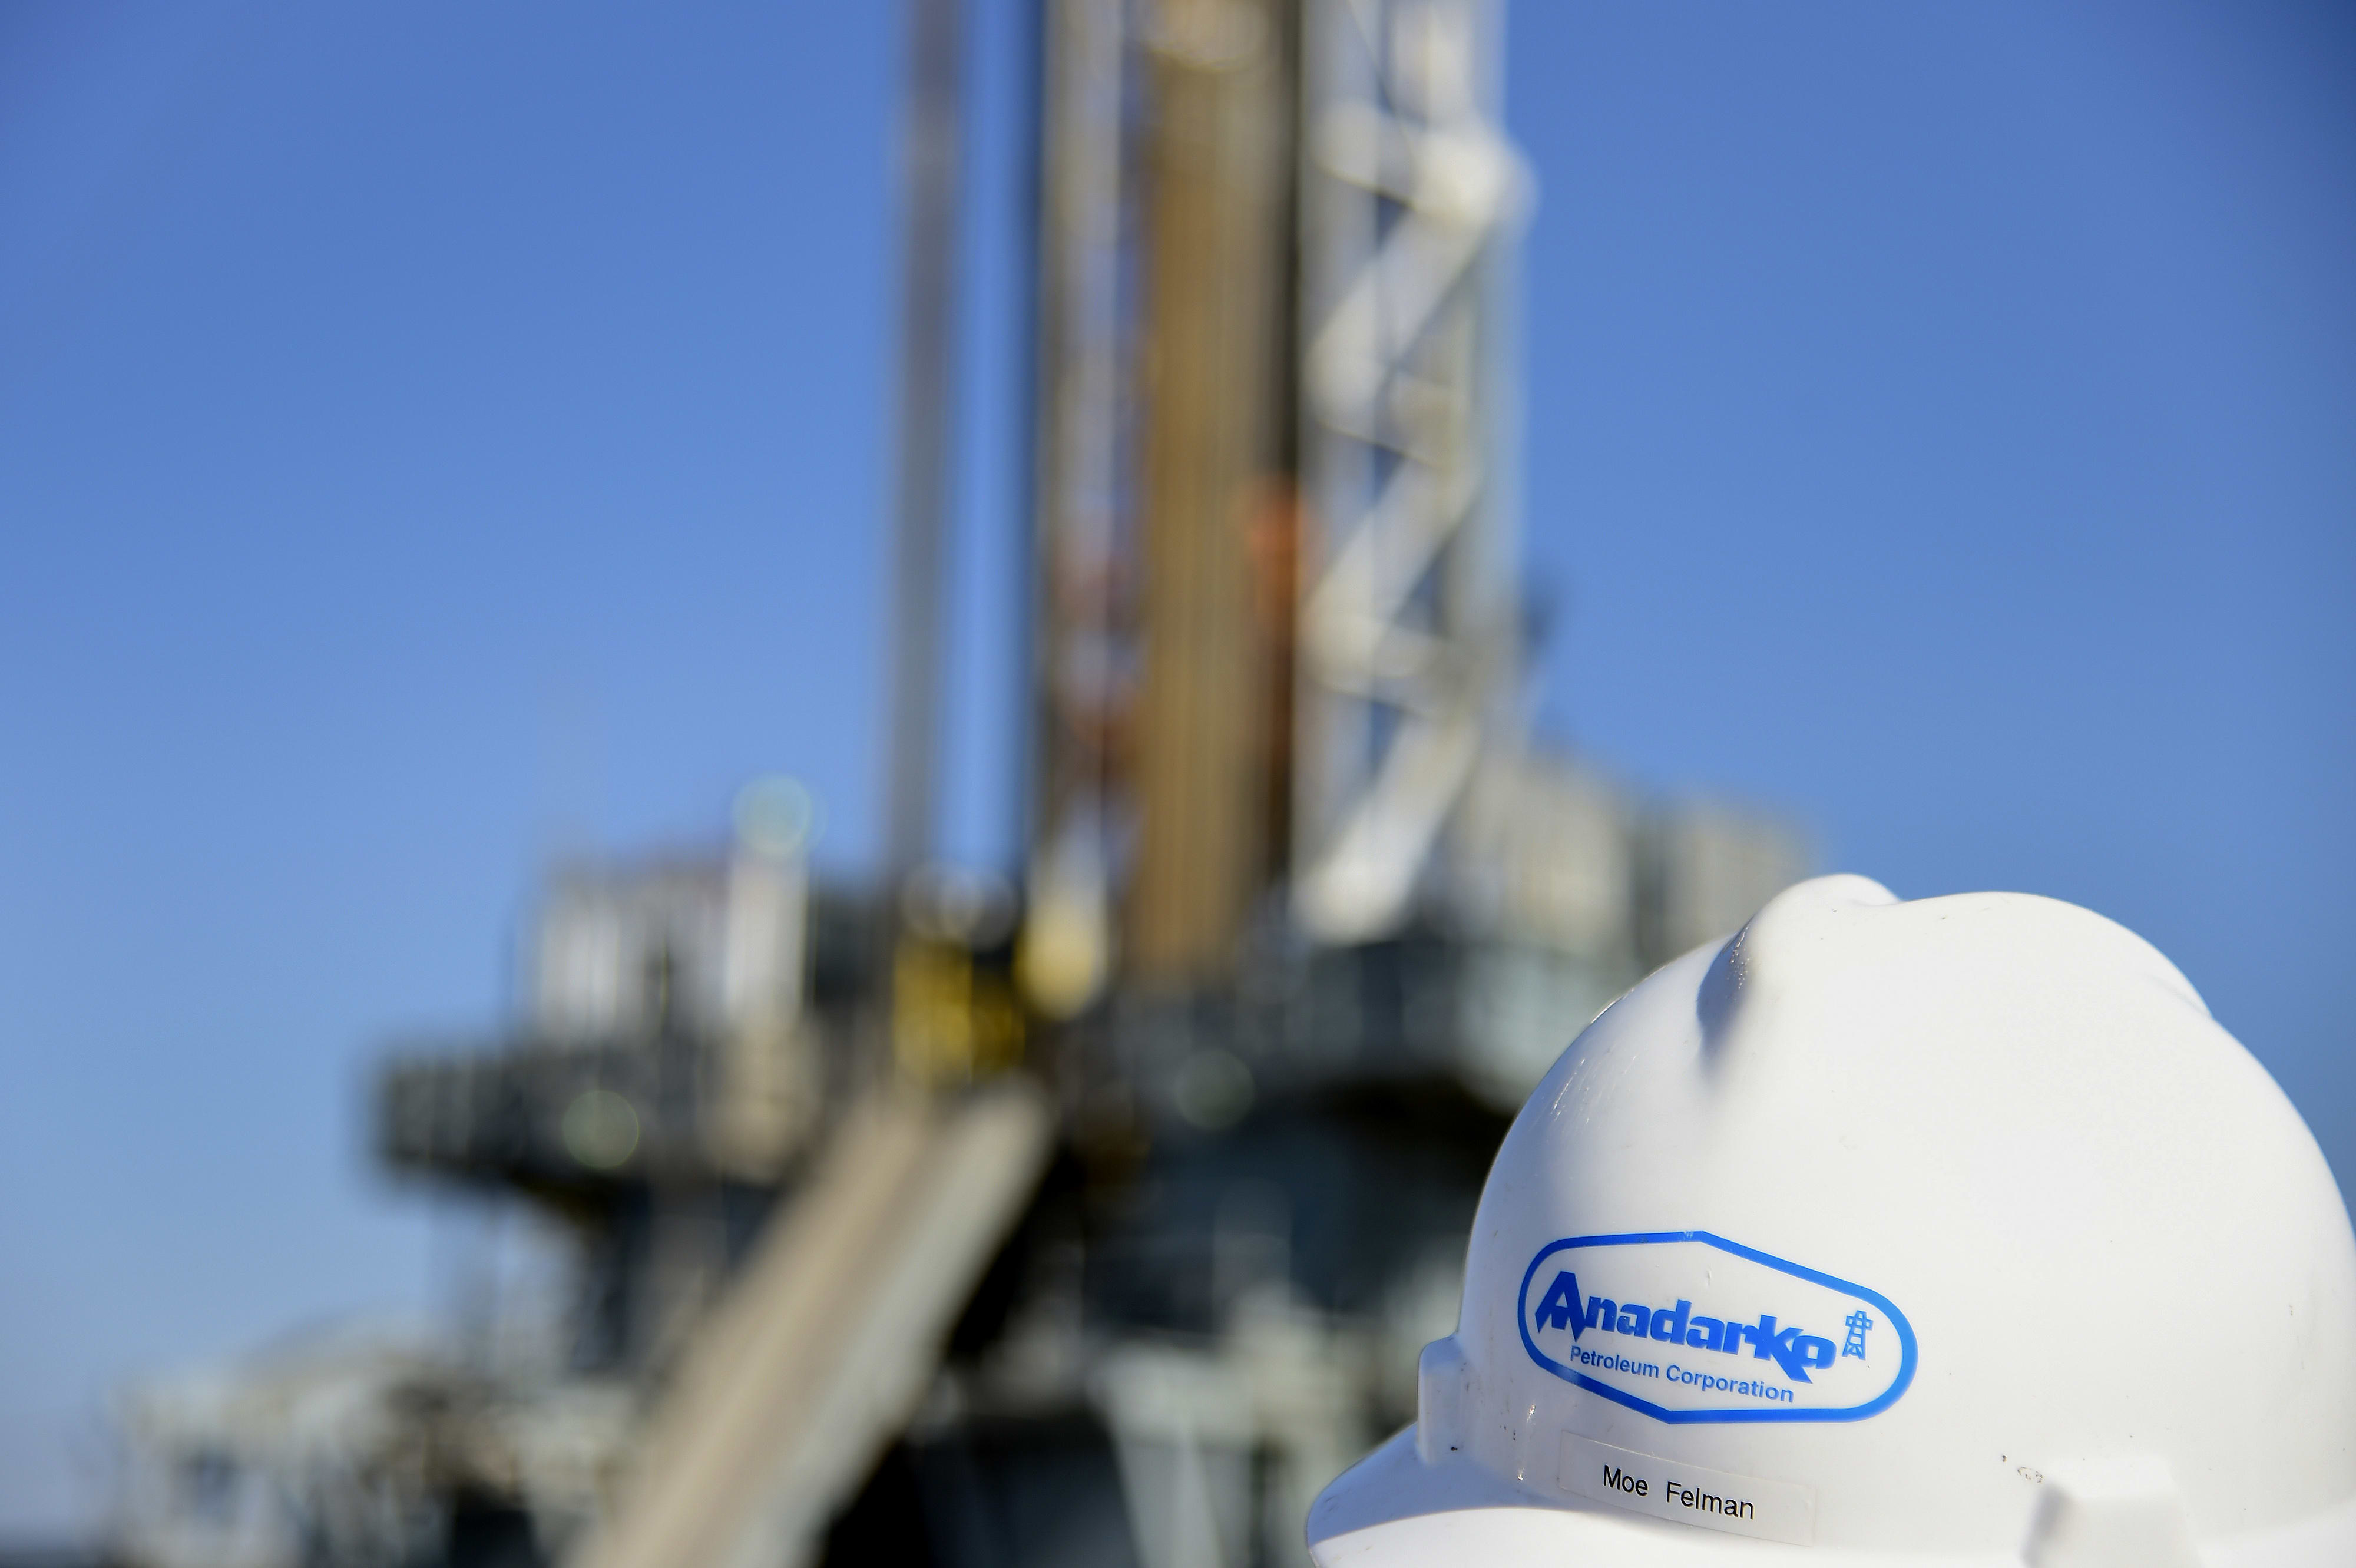 The Anadarko Petroleum Corp. logo is seen on the hard hat of a contractor at the company's oil rig site in Fort Lupton, Colorado.